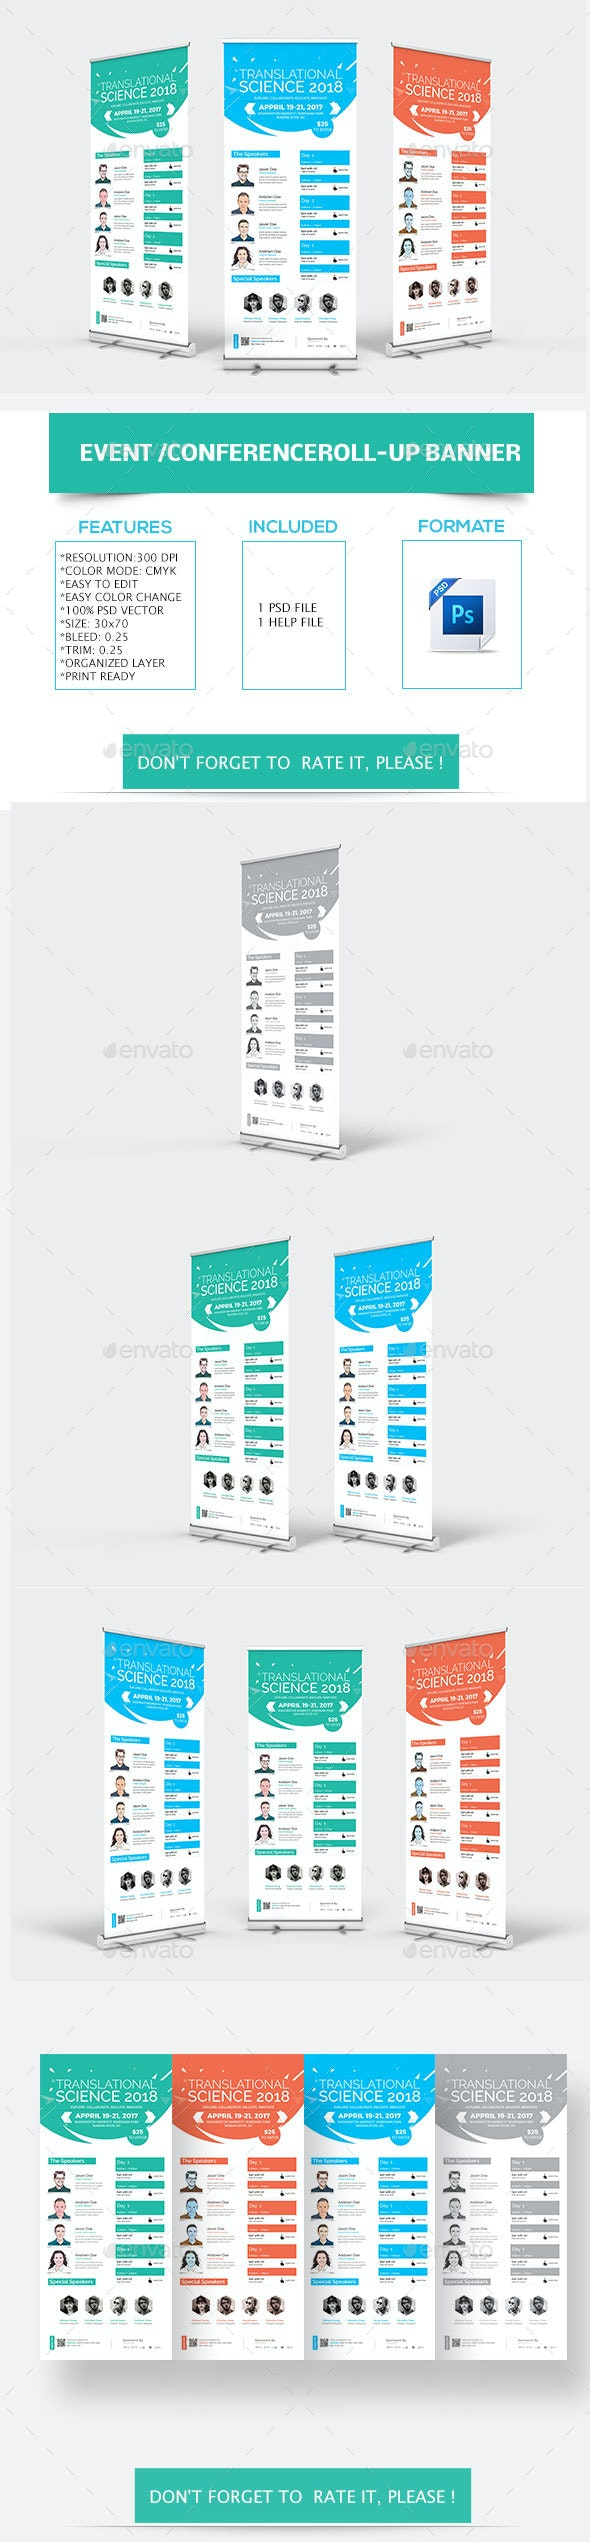 Event Conference Roll-up Banner - Signage Print Templates